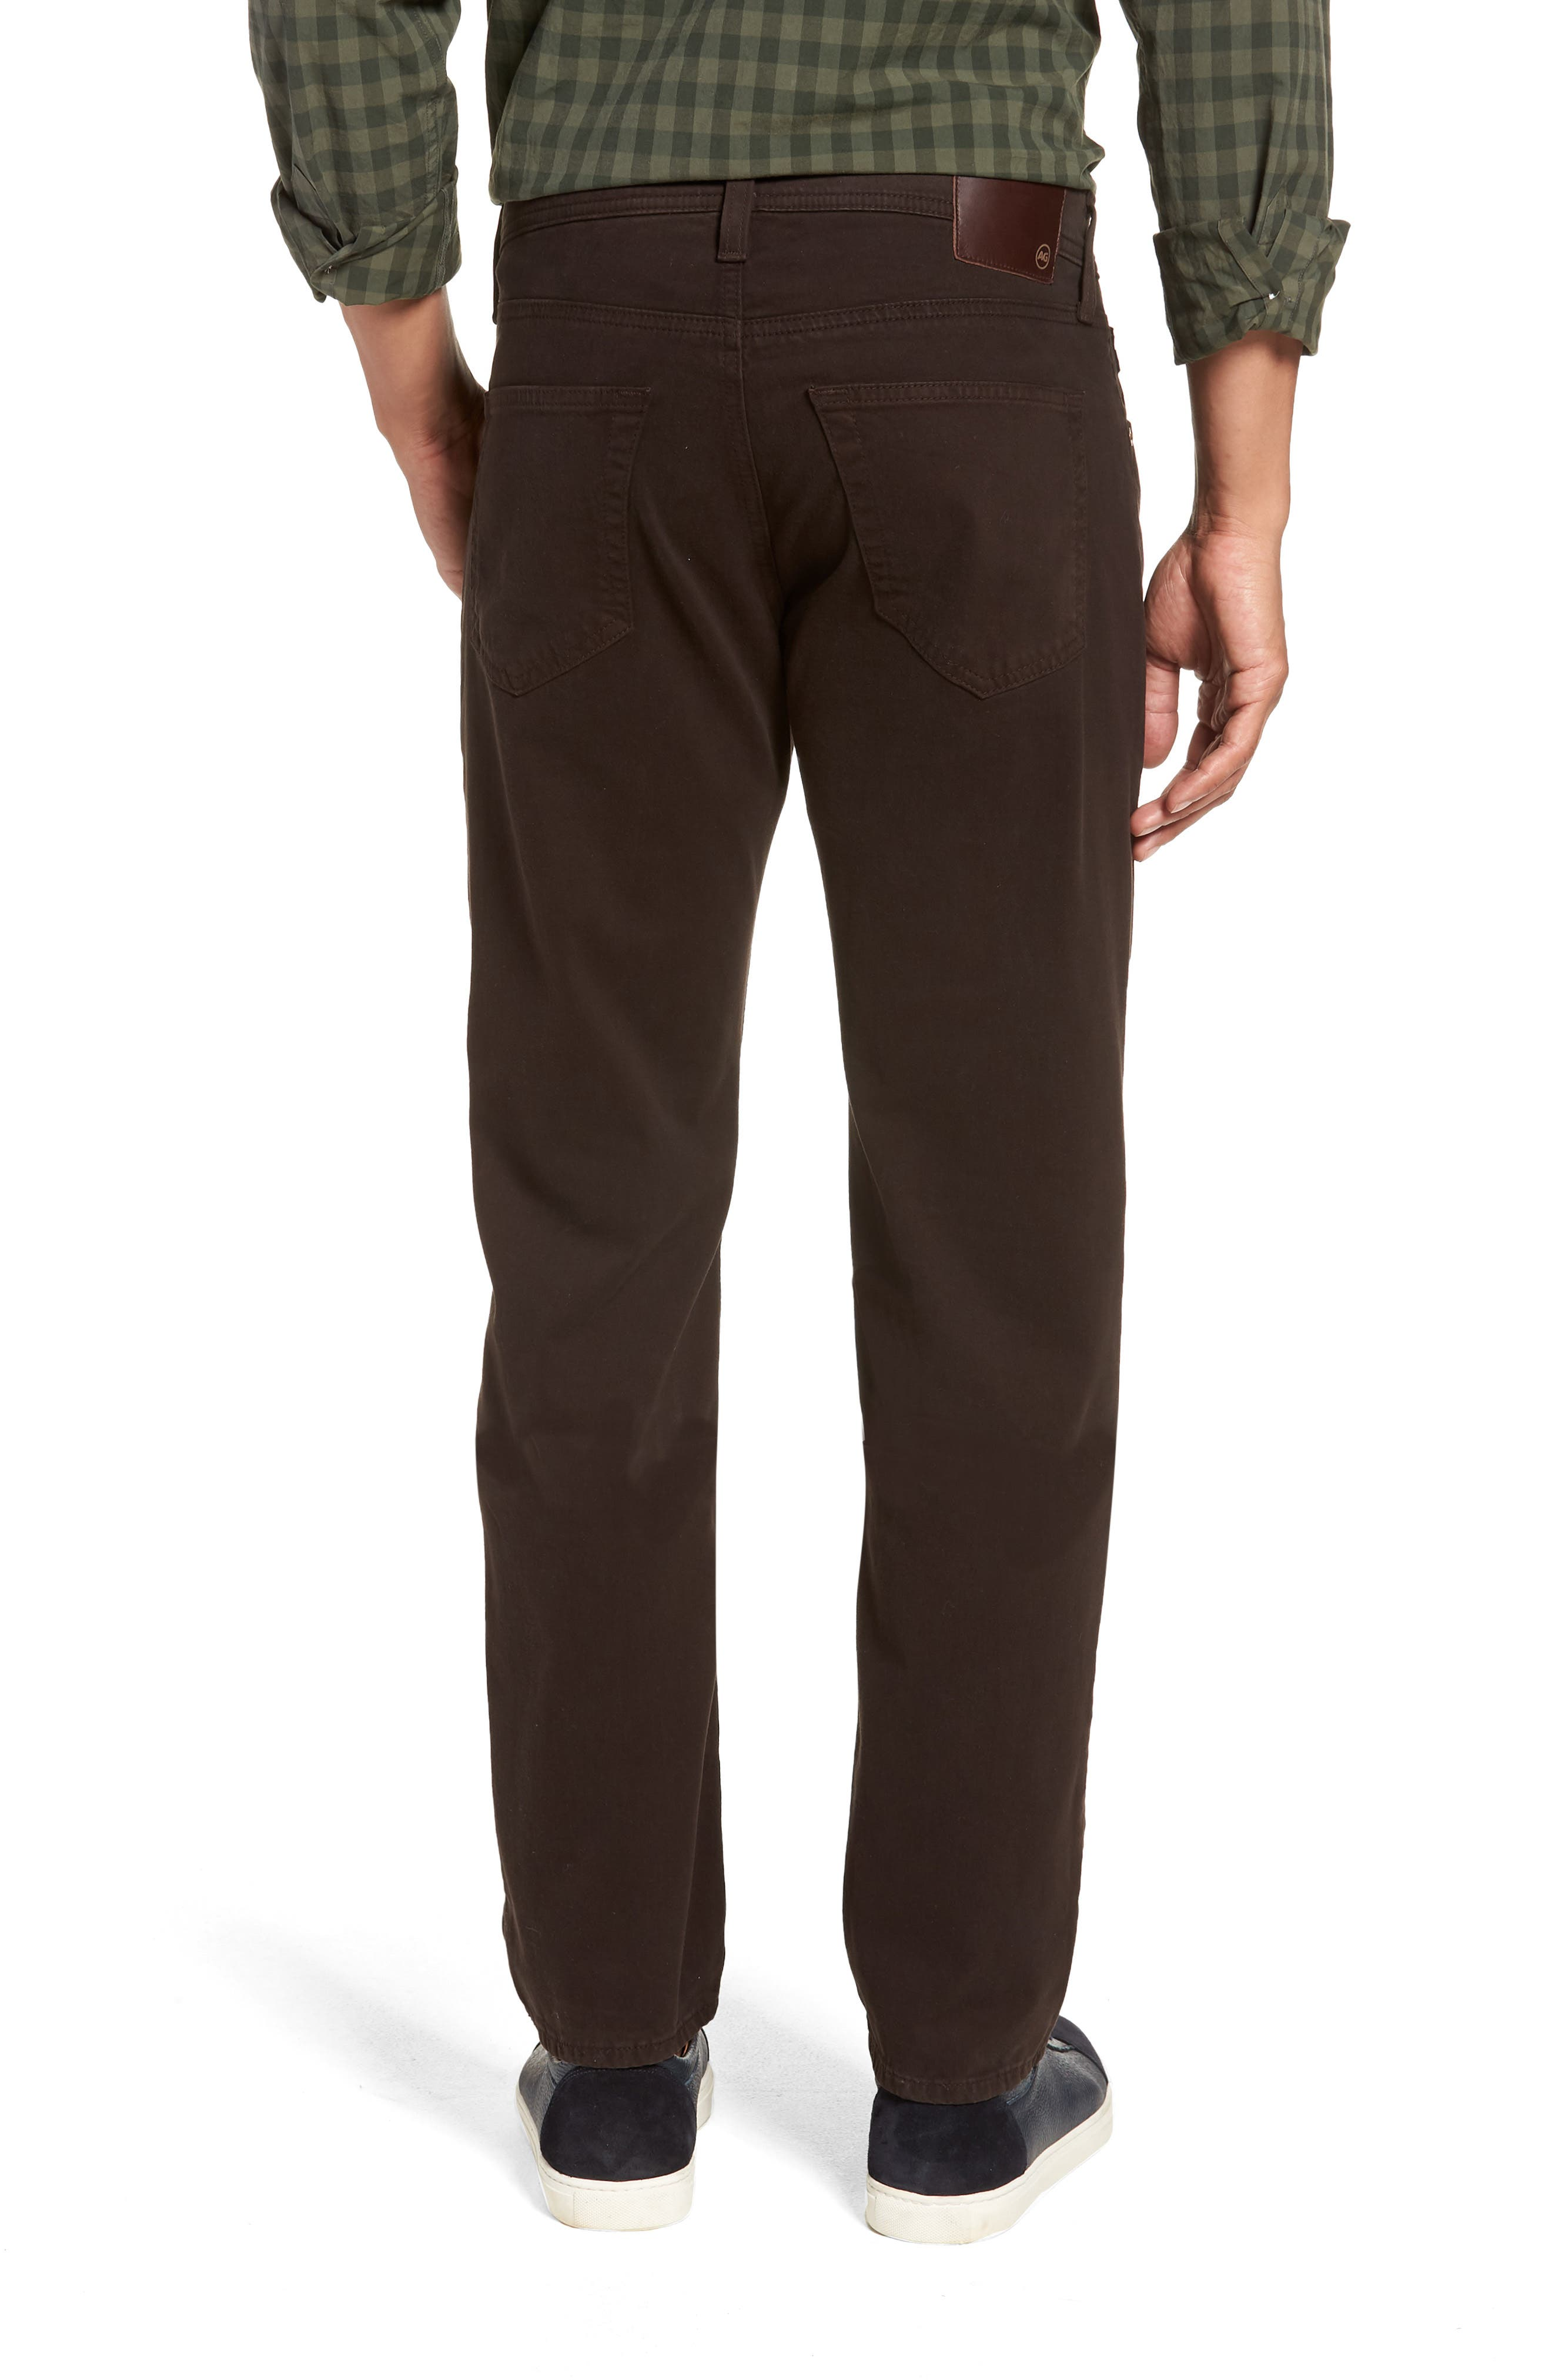 Tellis SUD Modern Slim Stretch Twill Pants,                             Alternate thumbnail 2, color,                             SHUTTER BROWN